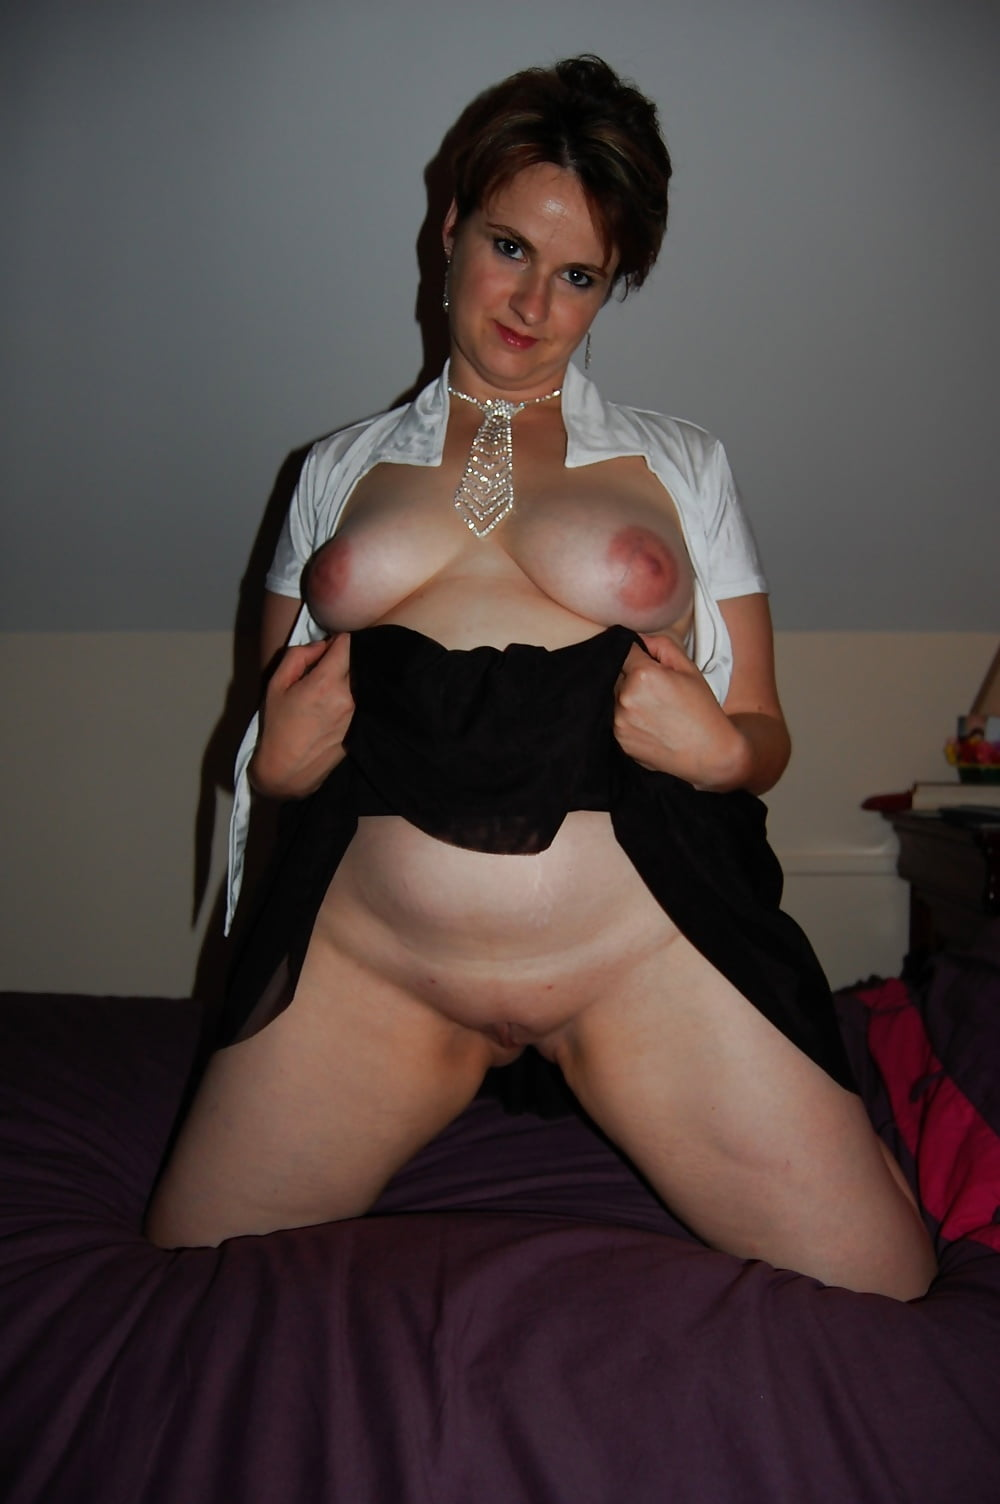 Brunette amateur milf thumb gallery and black nude